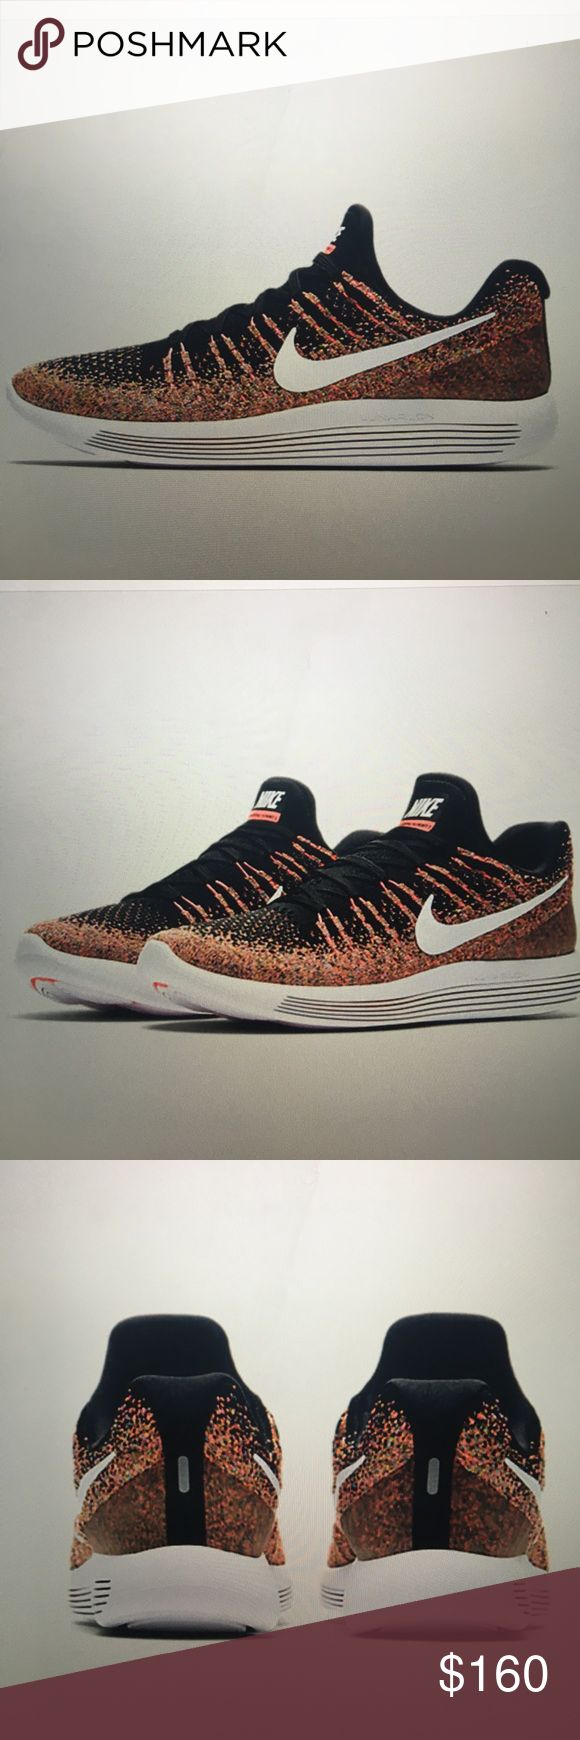 Nike LunarEpic Low Flyknit 2 Brand new still in box. Hot punch/black/white multicolor design Nike Shoes